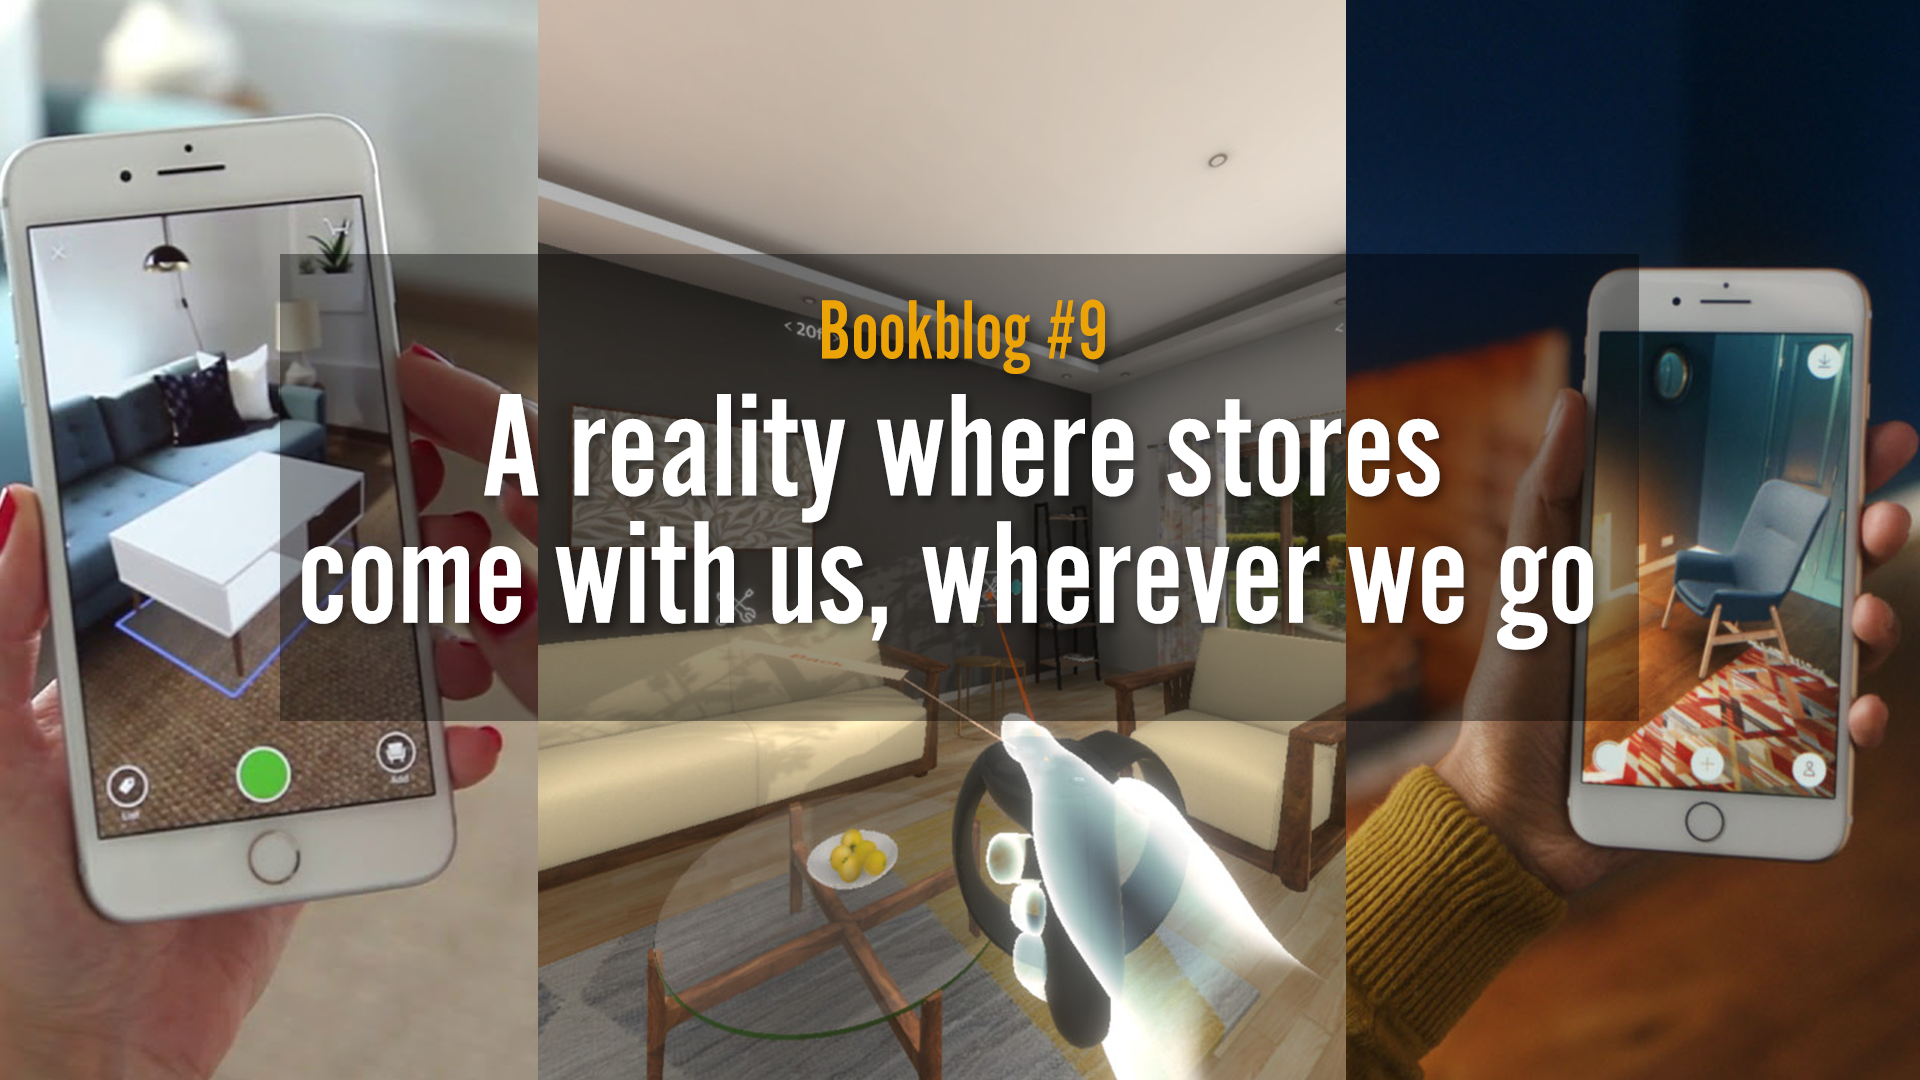 A reality where stores come with us, wherever we go